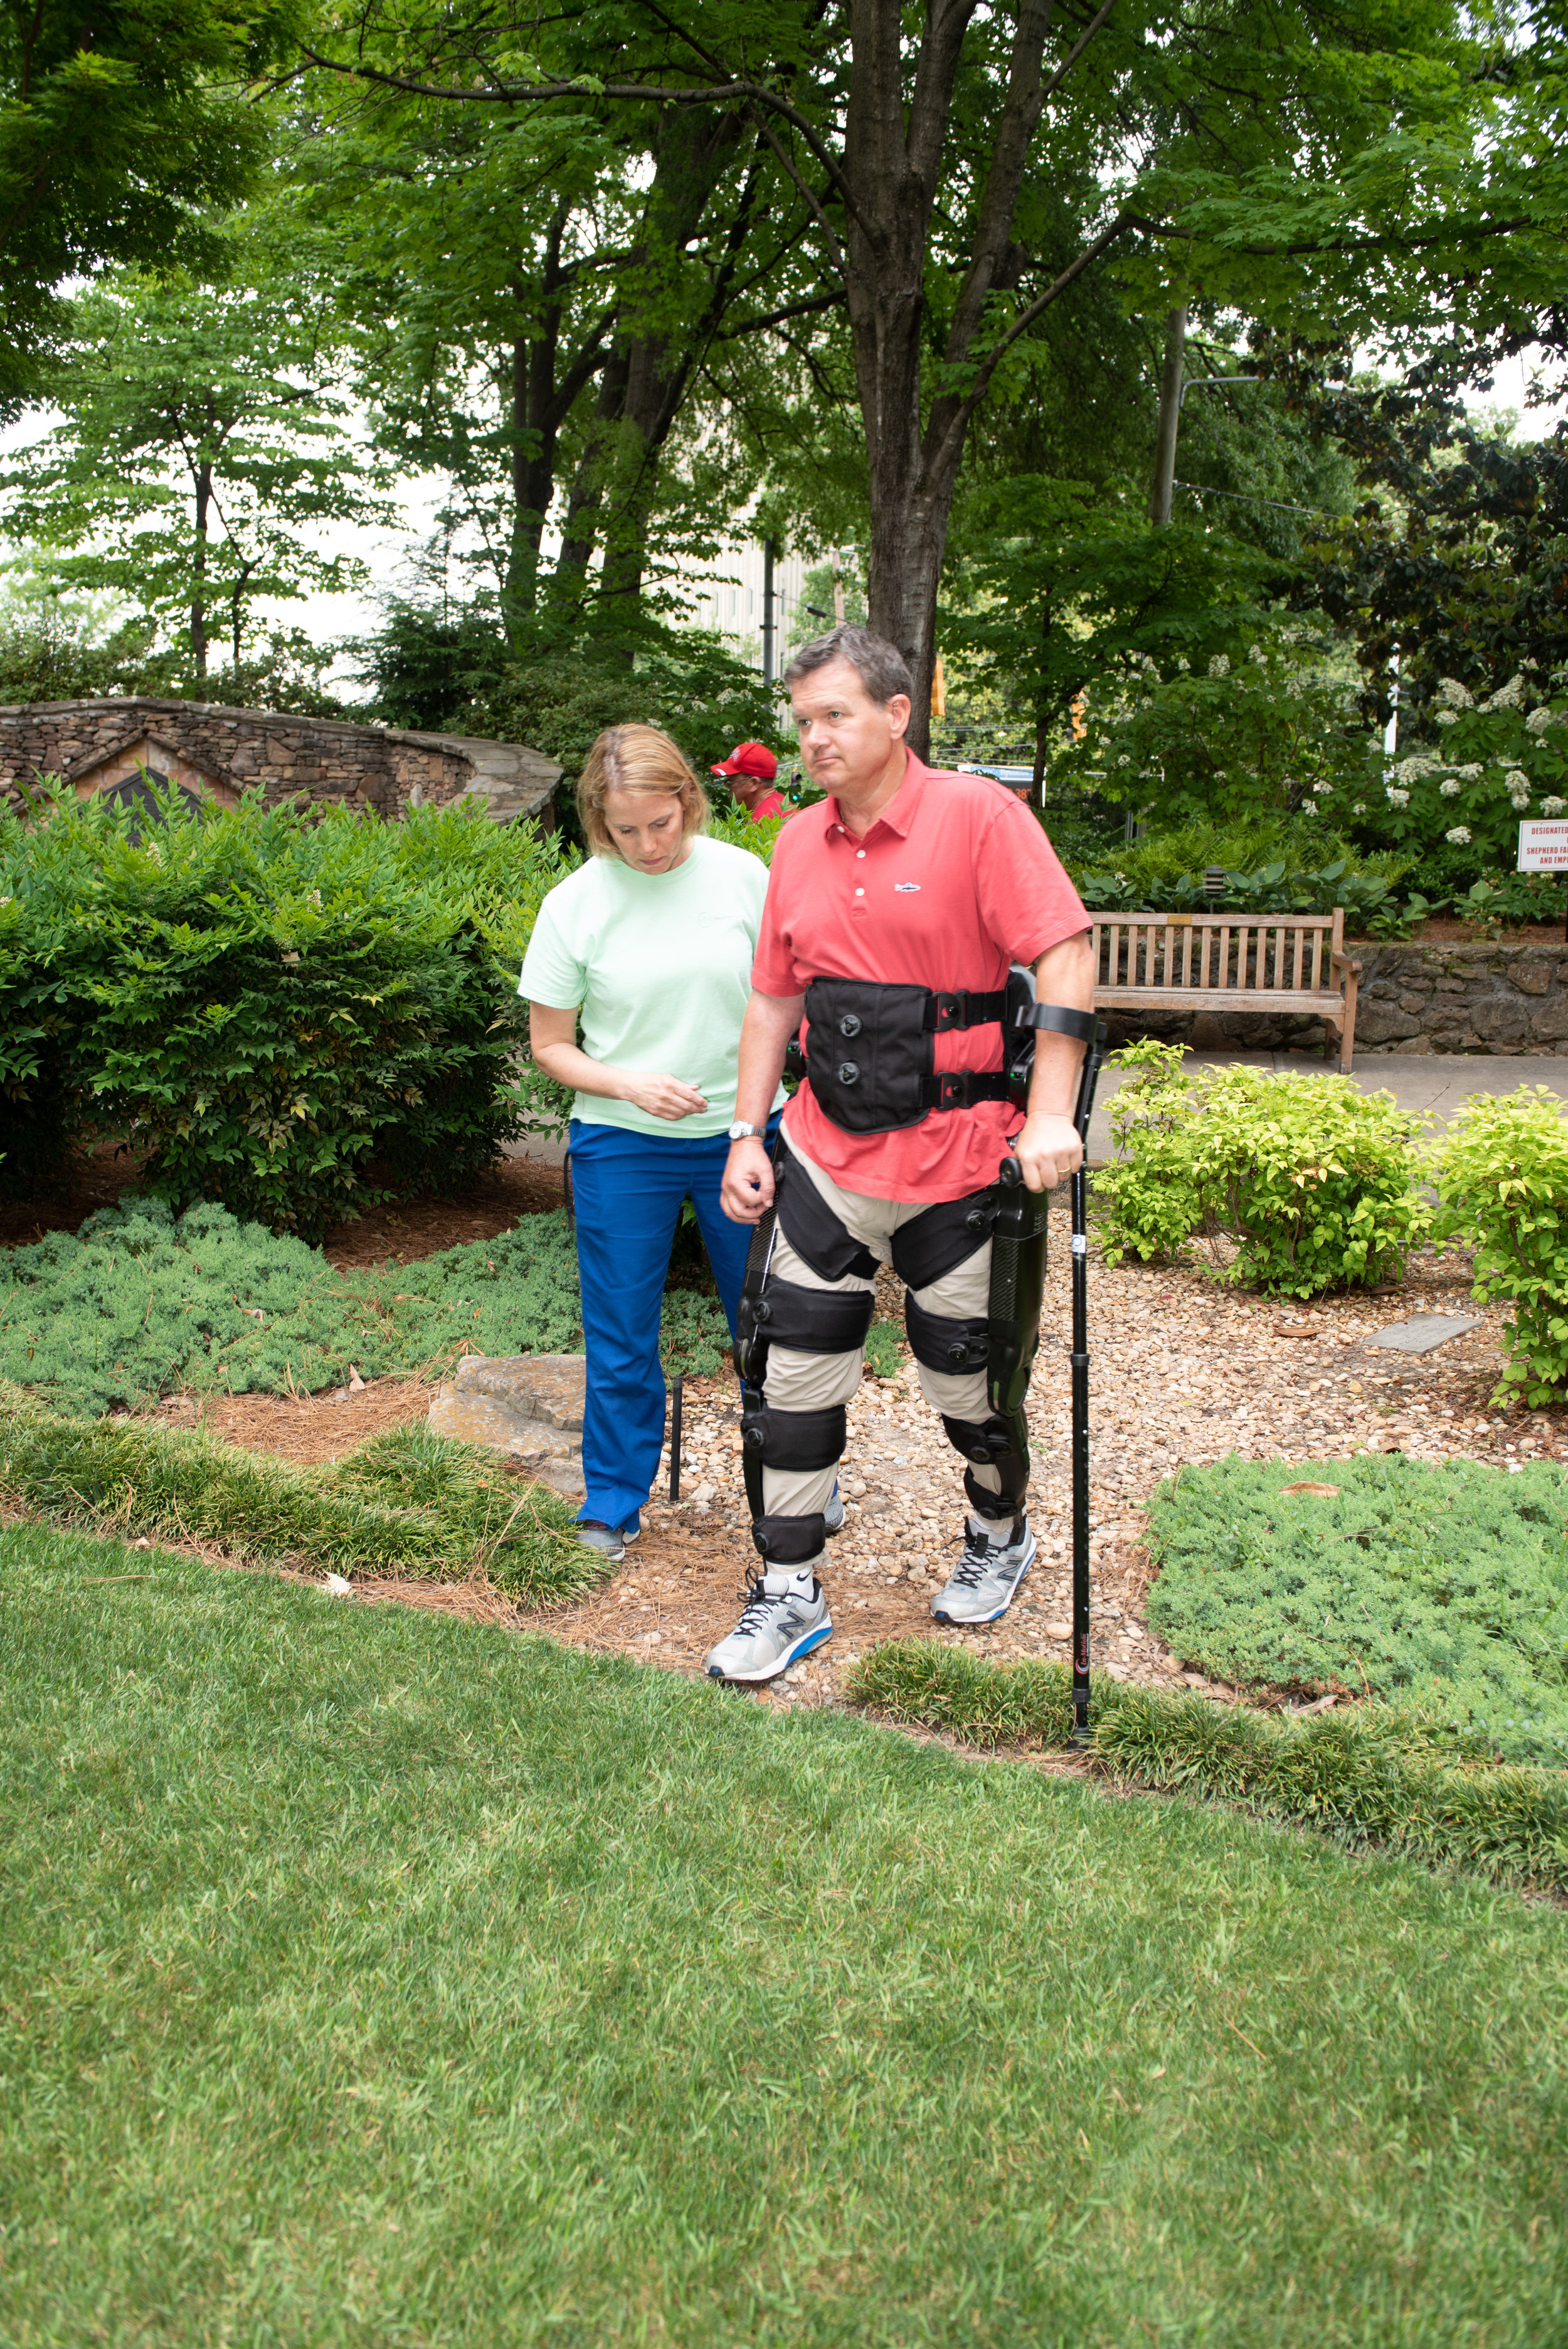 Indego can allow greater independence when mobility is otherwise compromised